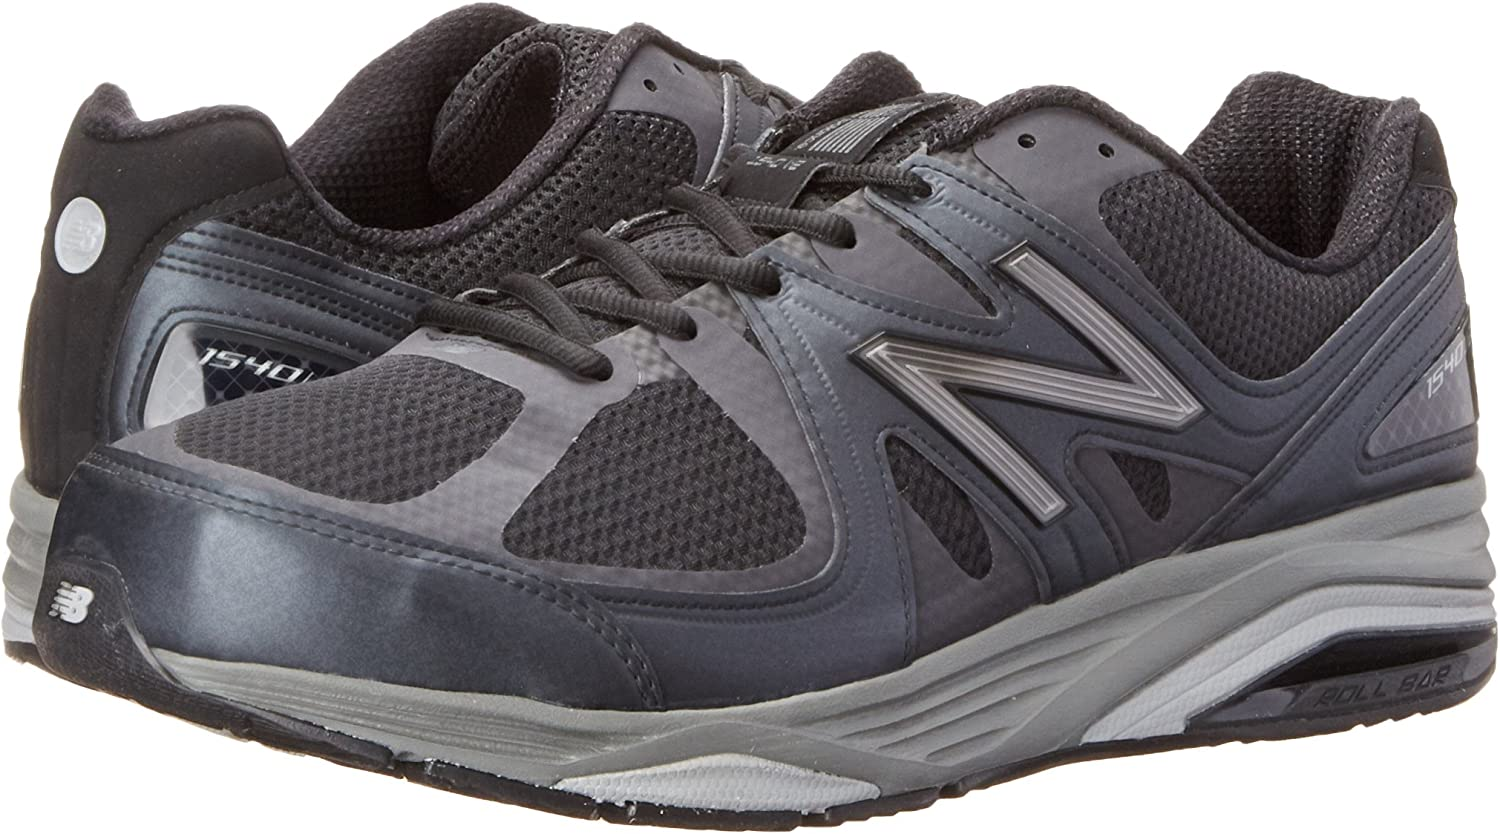 | New Balance Men's Made in Us 1540 V2-Running Shoe | Tennis & Racquet Sports